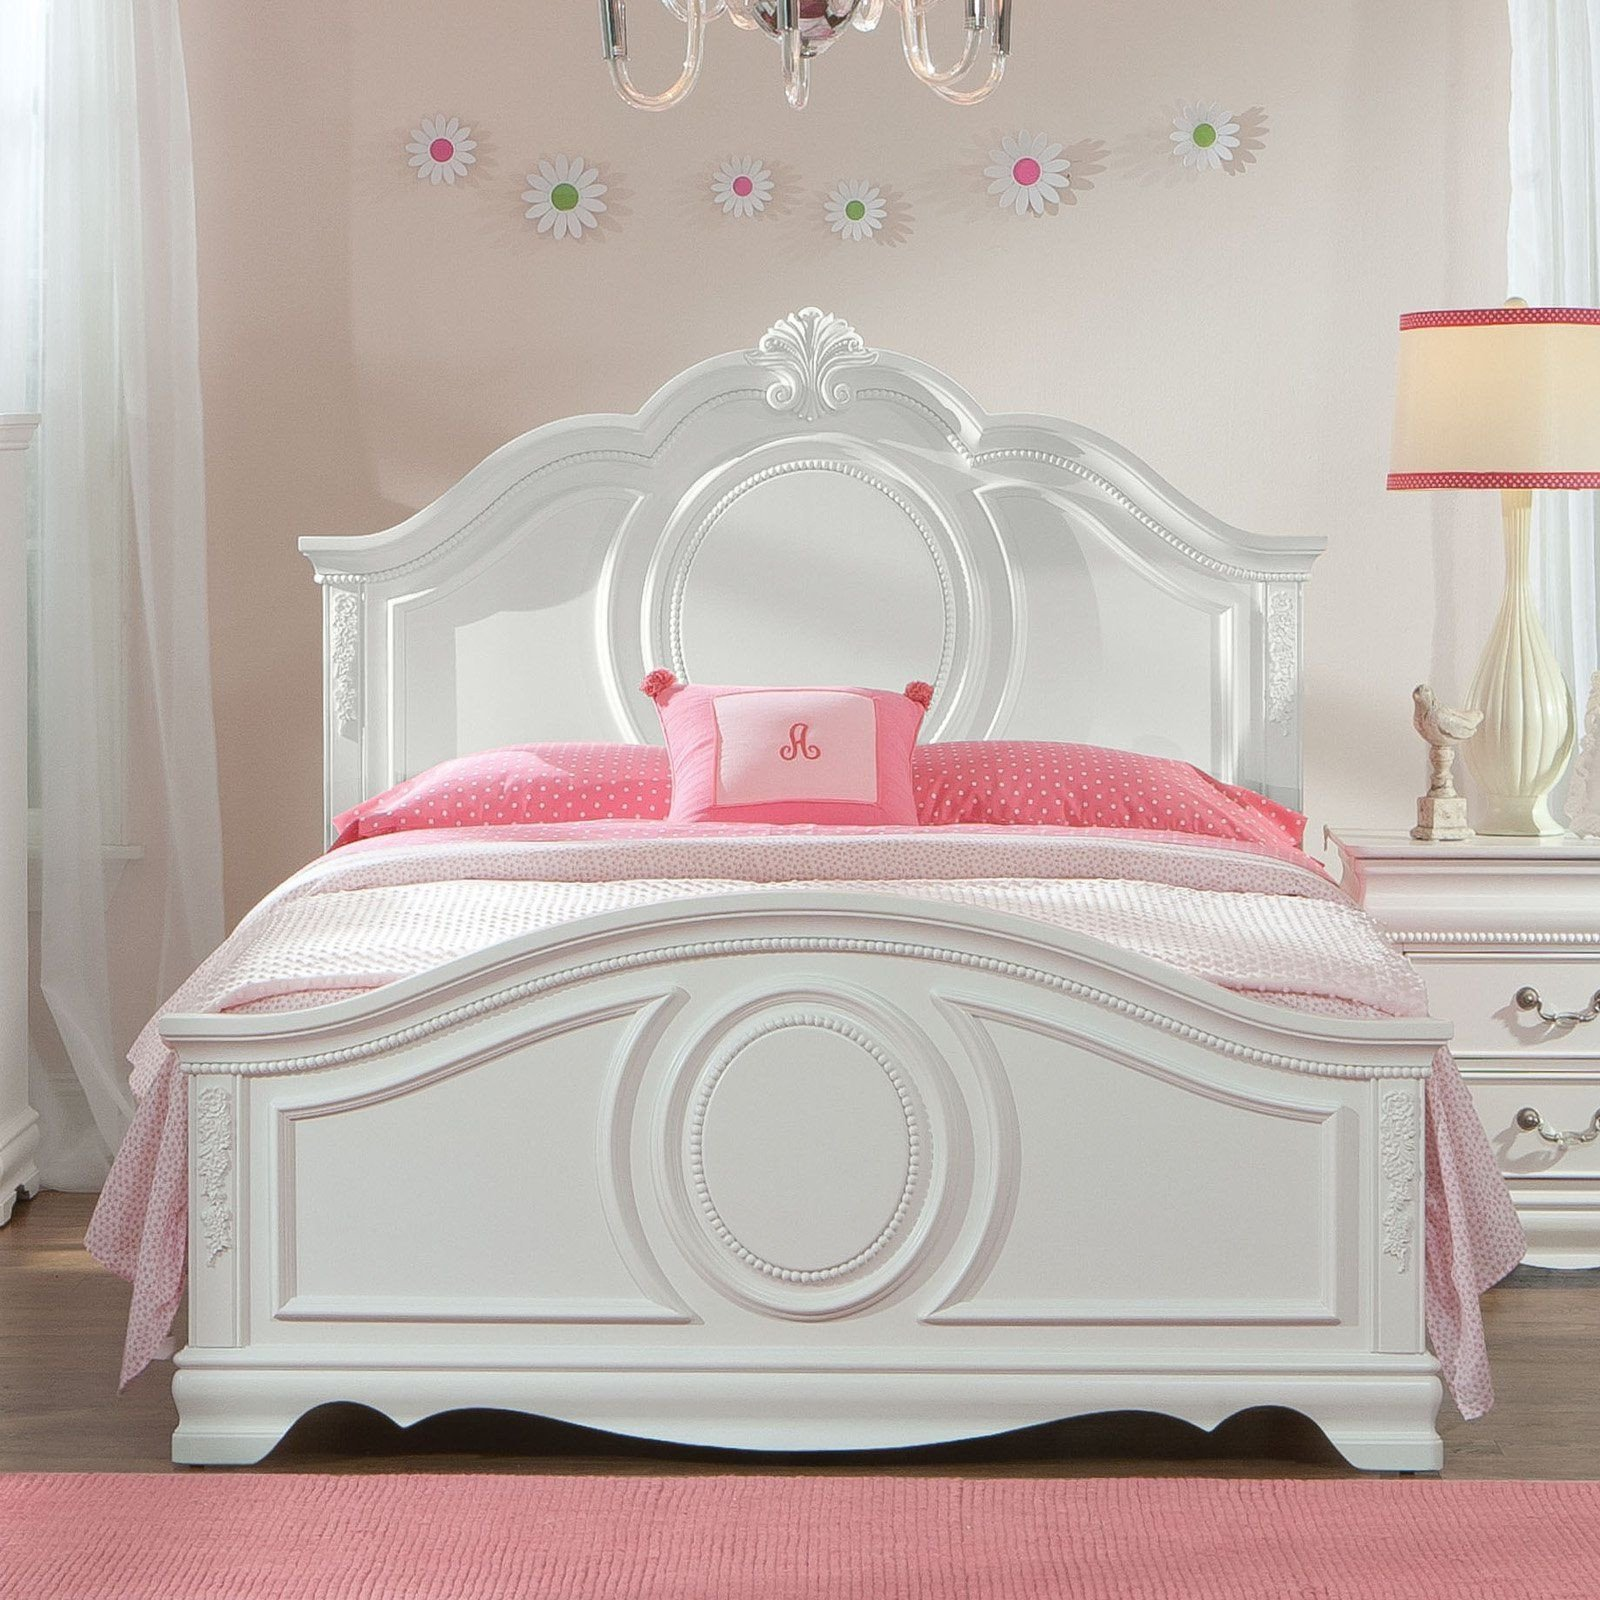 Girls Full Size Bedroom Set Luxury Standard Furniture Jessica Panel Bed White Stfm706